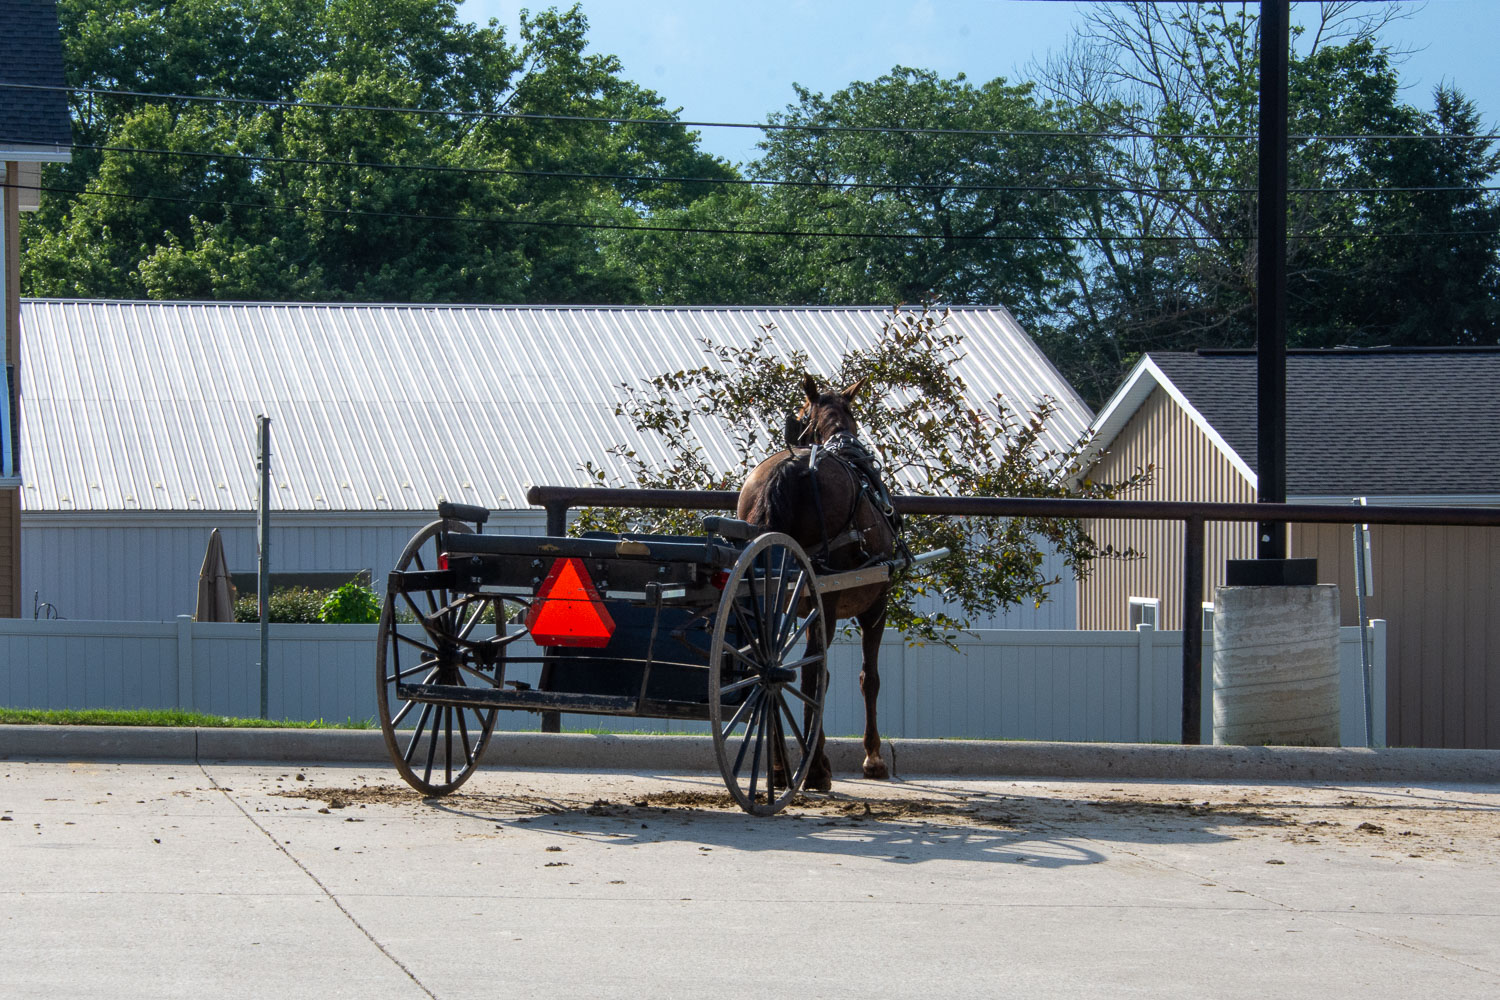 Horse and wagon in Homes County, Ohio.